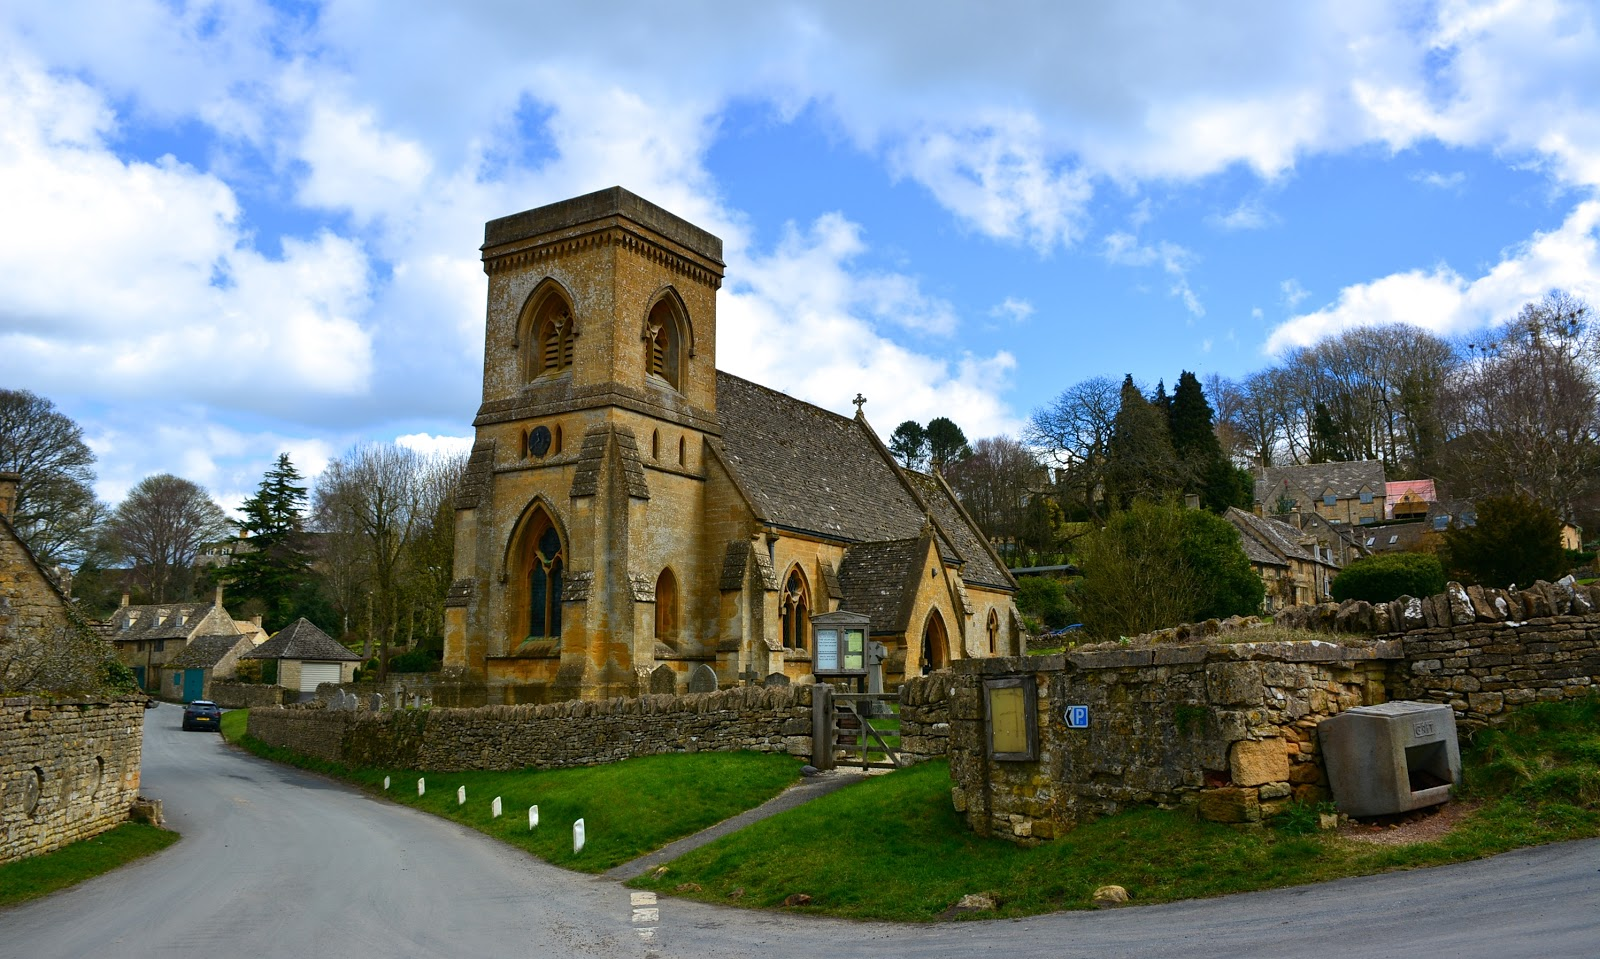 Snowshill village in the Cotswolds